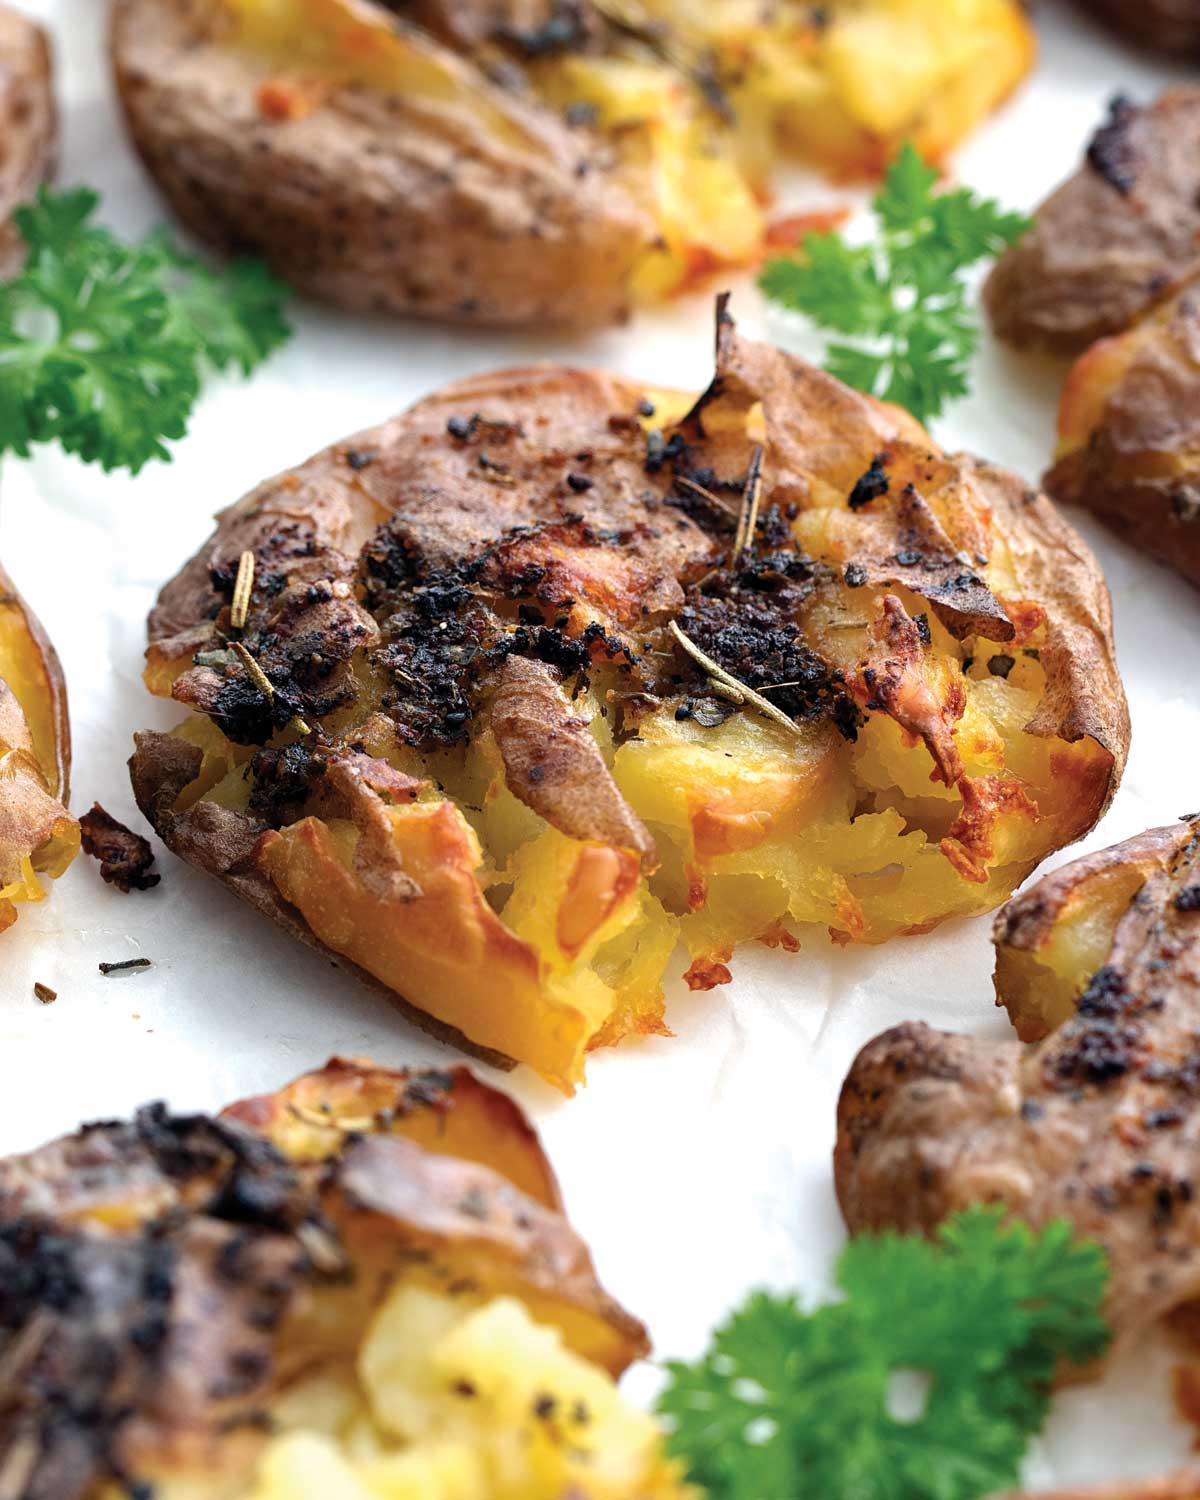 closeup of a smashed potato garnished with parsley